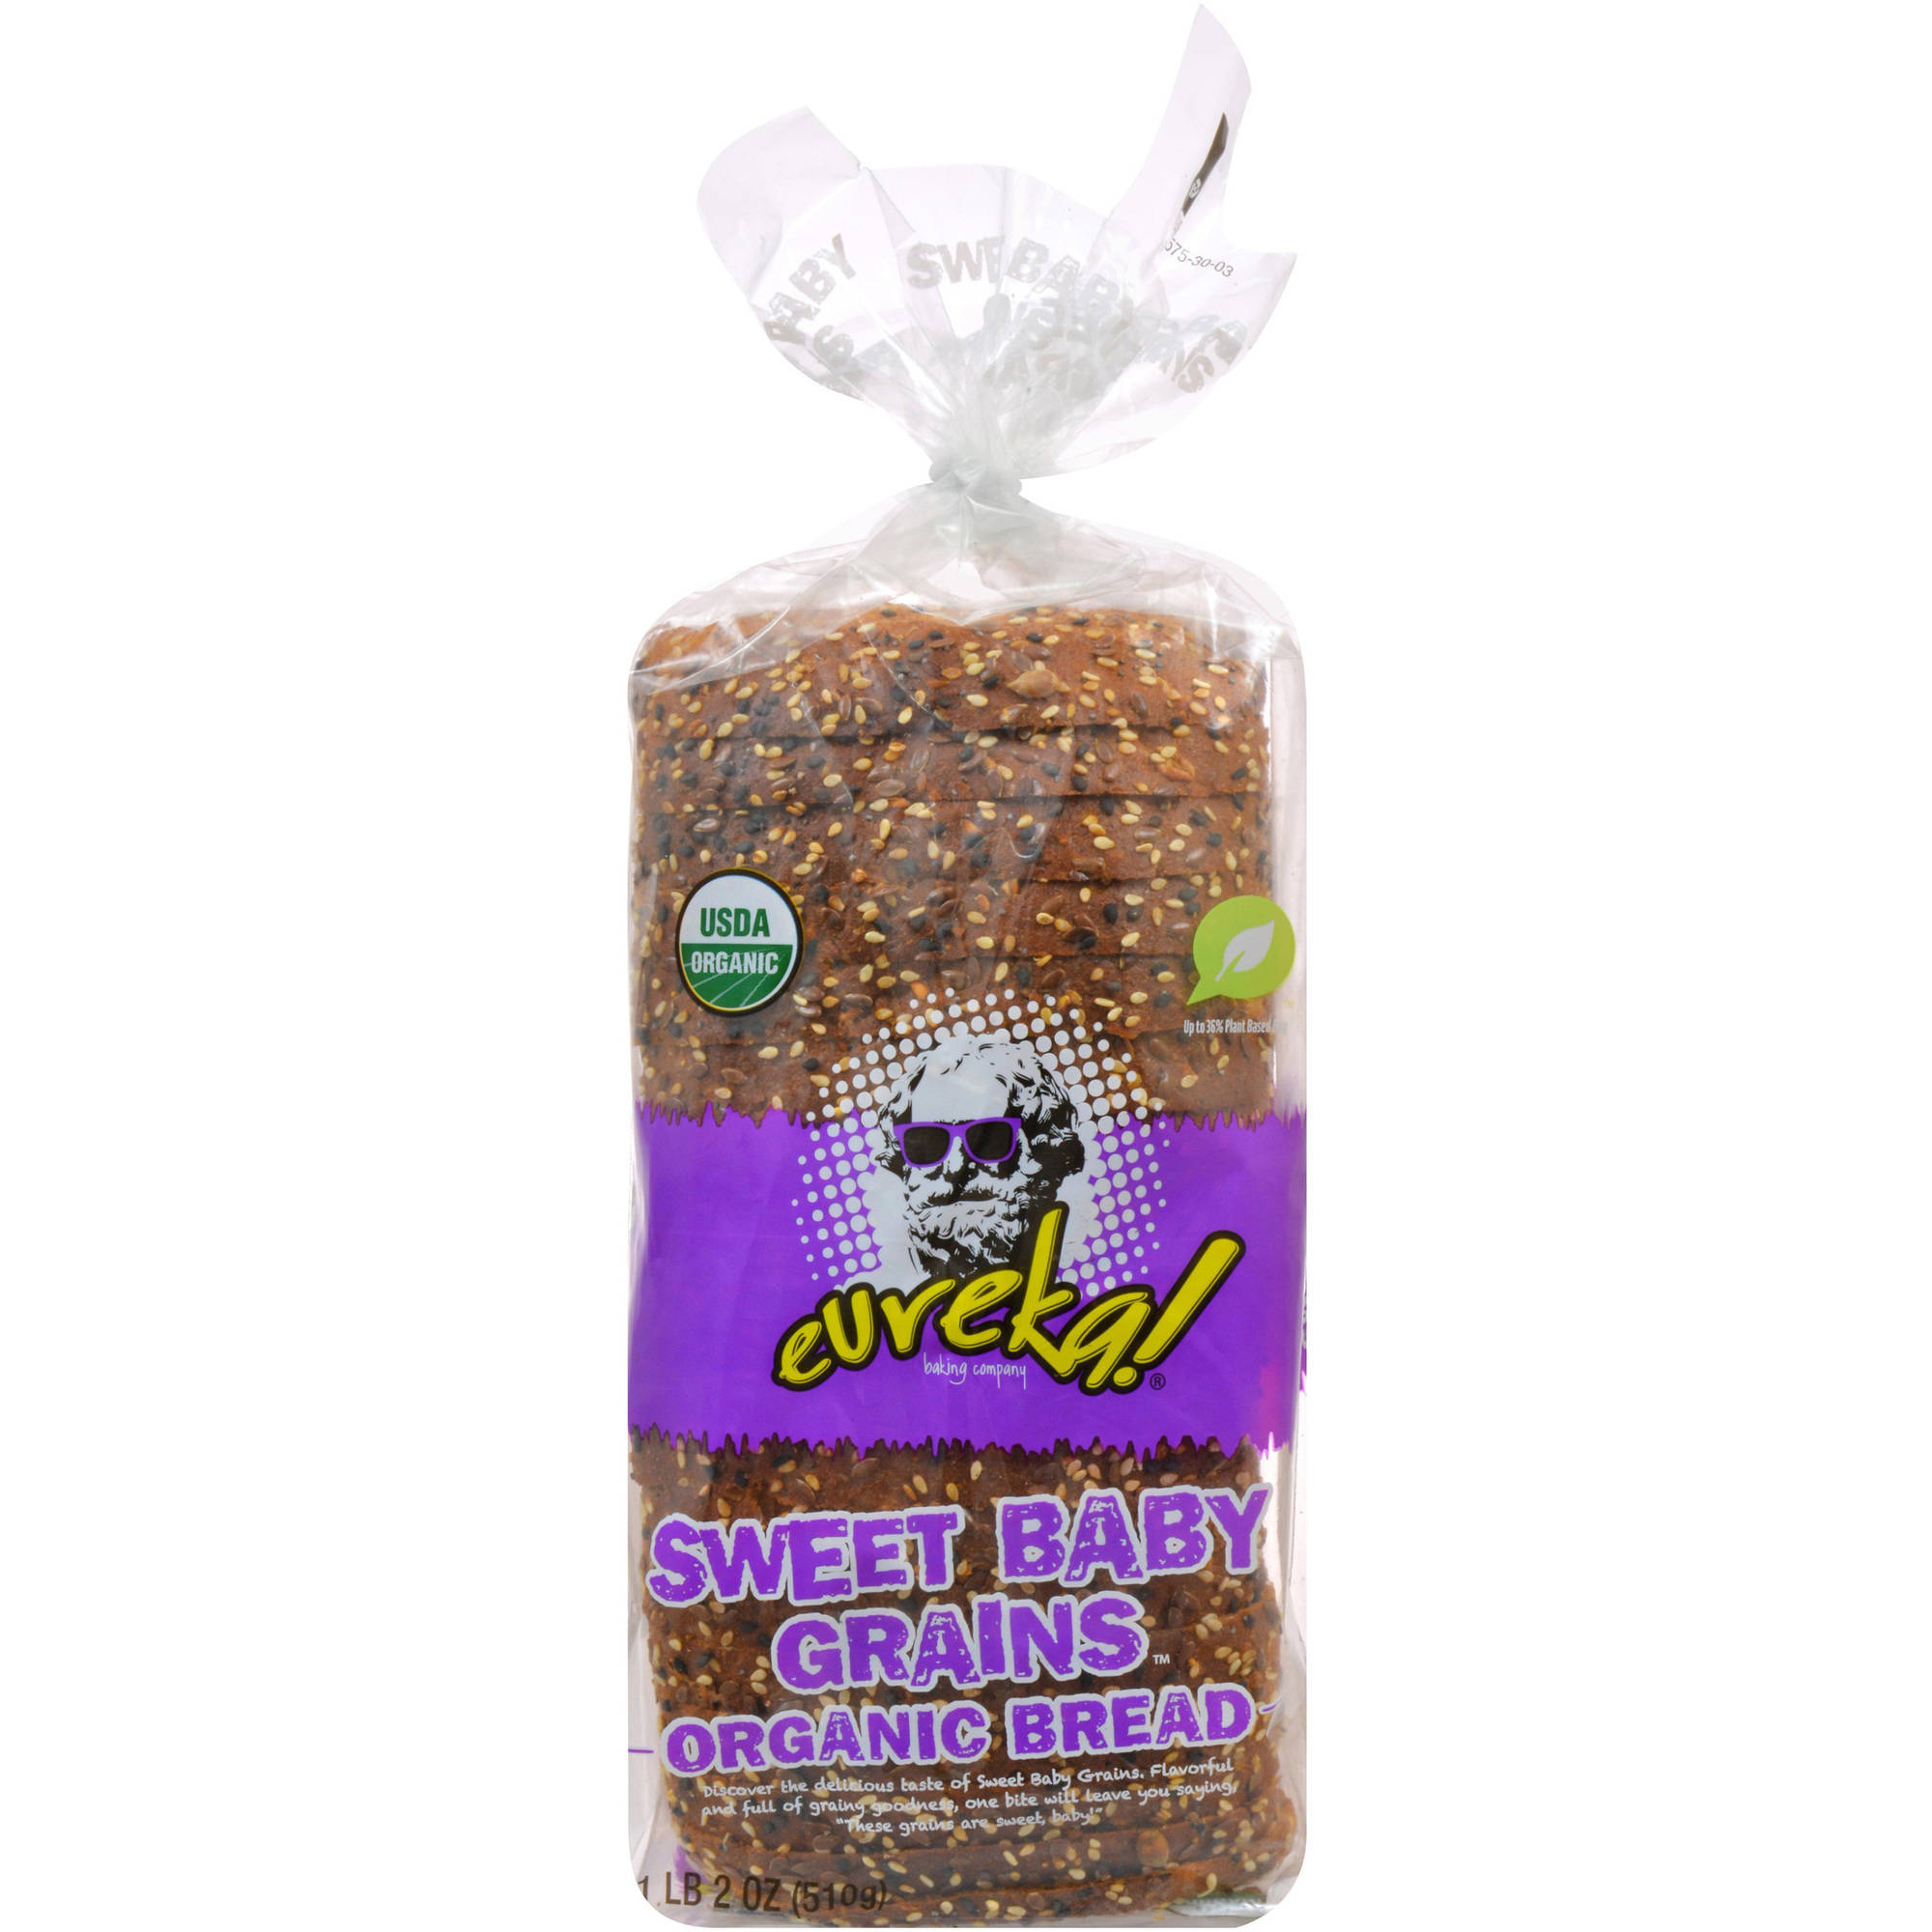 eureka! Sweet Baby Grain Bread, 18 oz